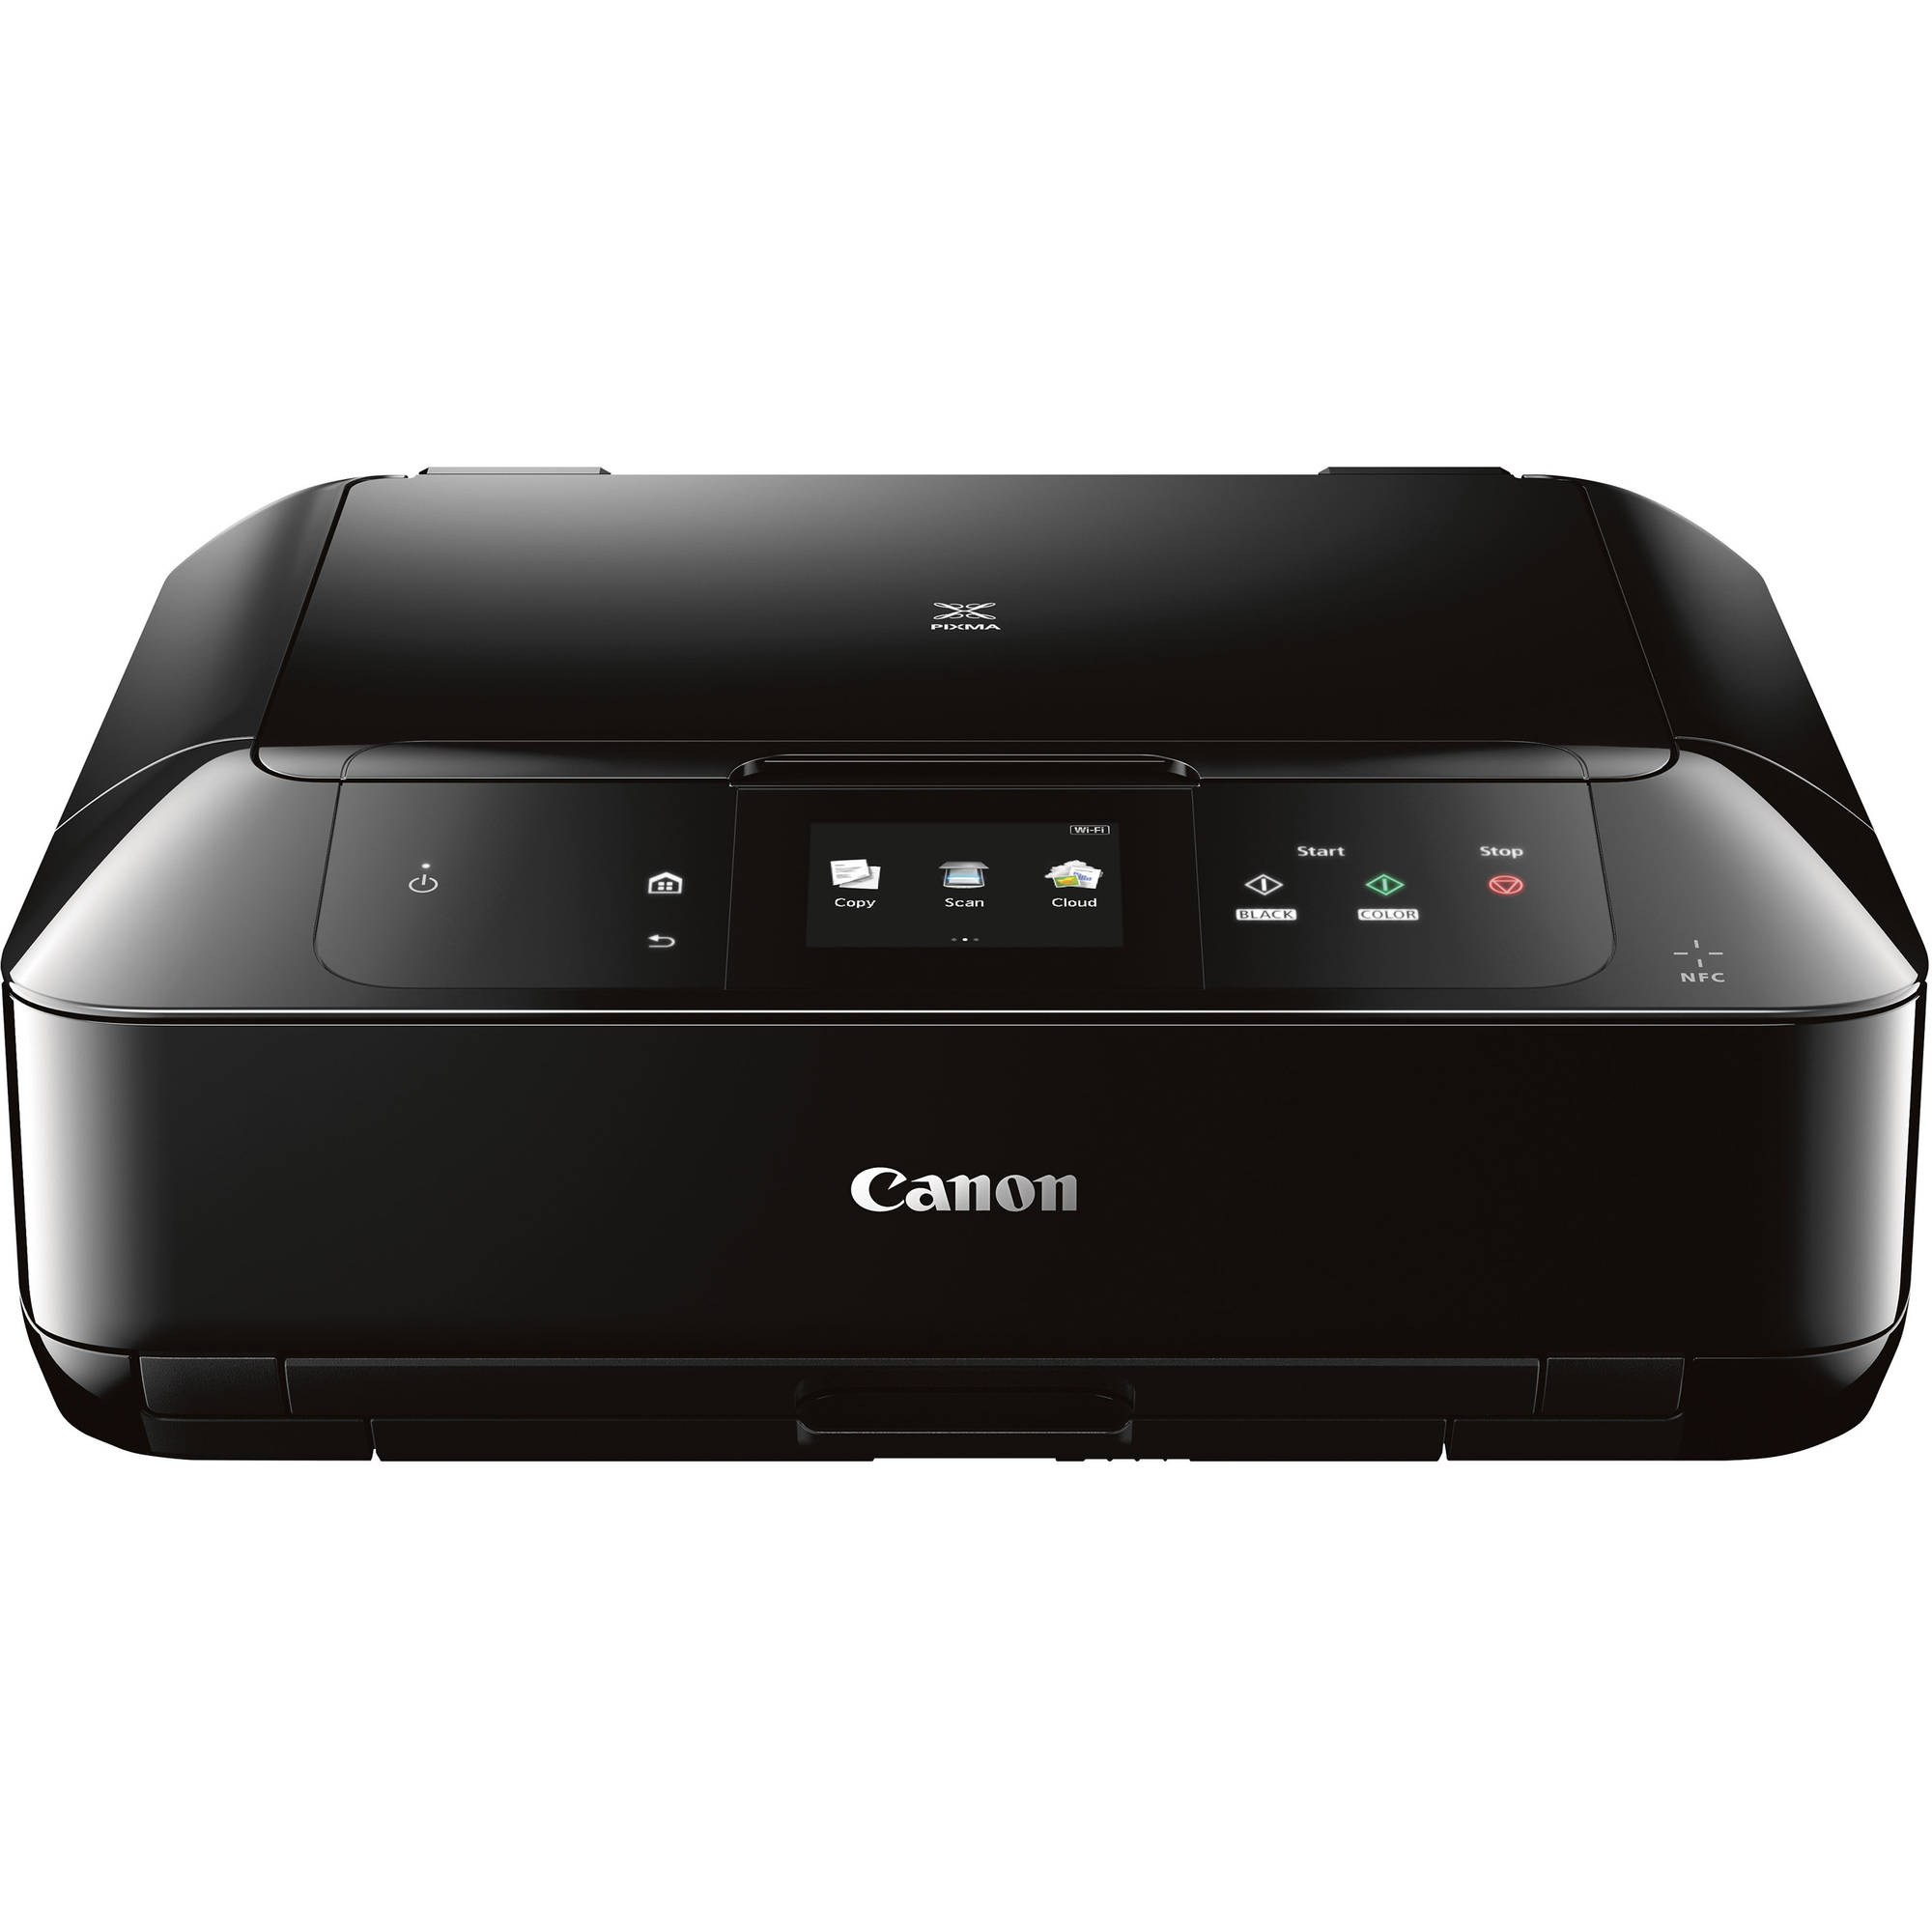 Canon PIXMA MG7720 Wireless All-in-One Inkjet Printer (Black)